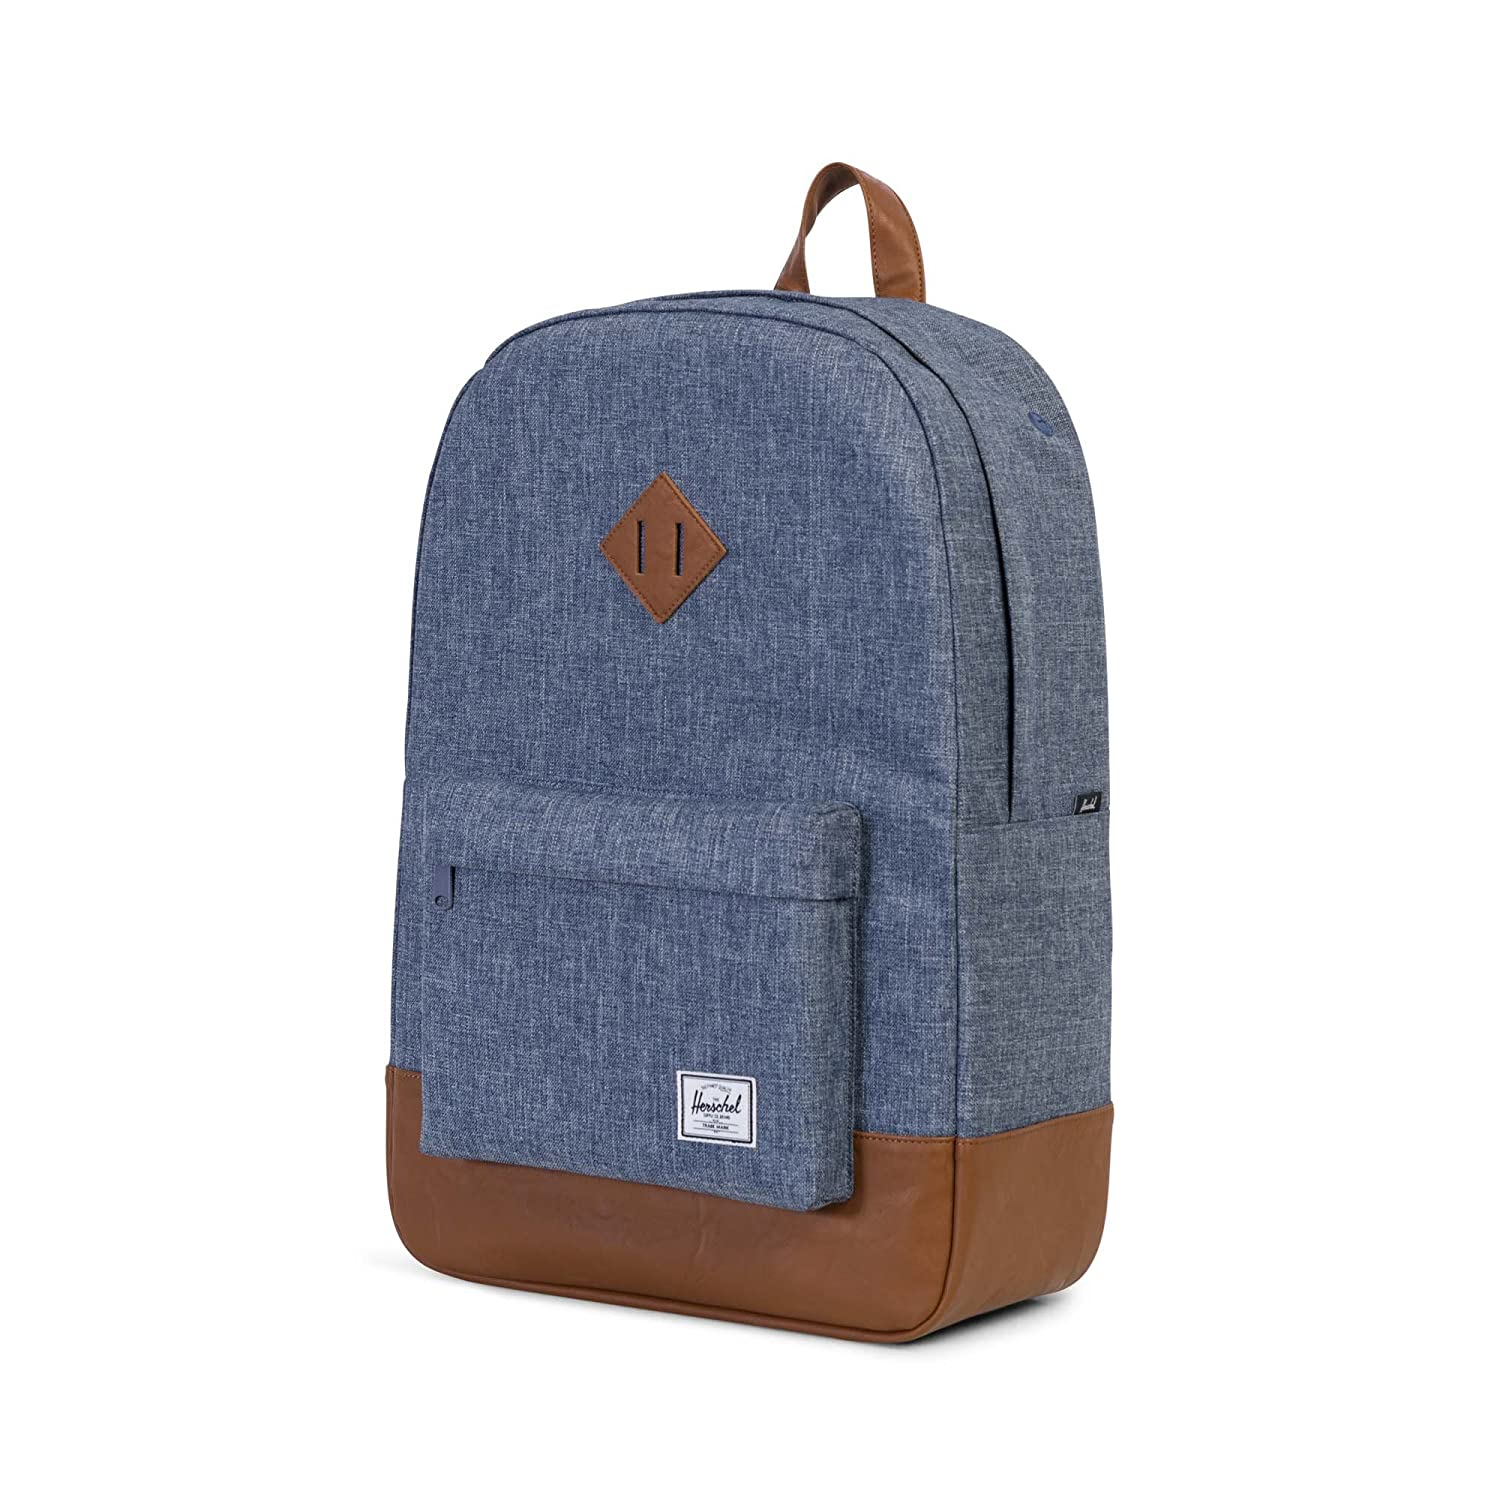 de0c949919 Herschel Heritage Backpack-Dark Chambray Crosshatch Tan Synthetic Leather